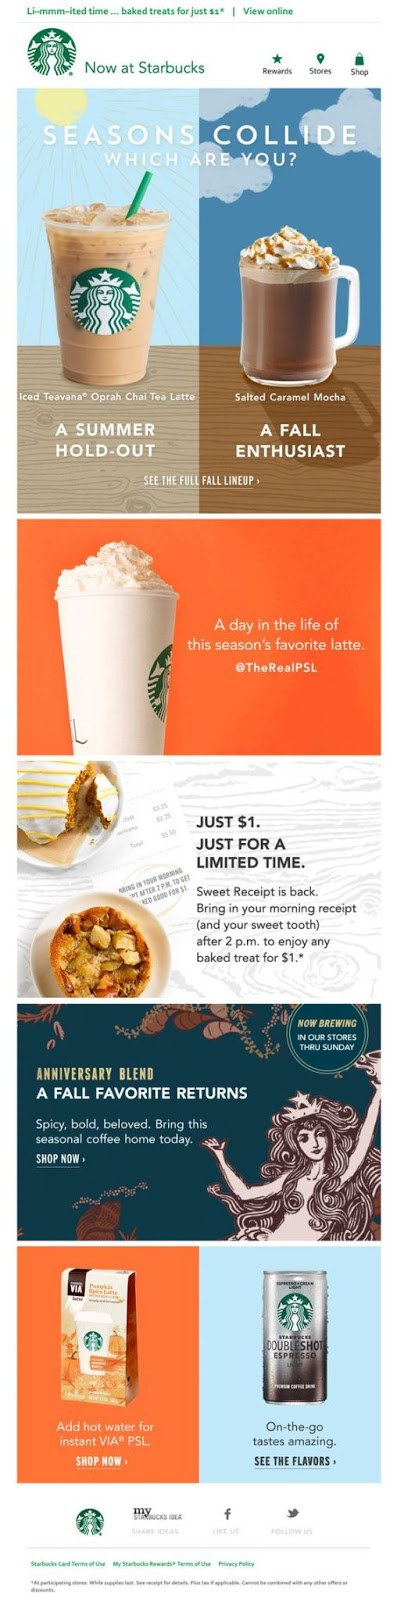 Starbucks - Fall email campaign example